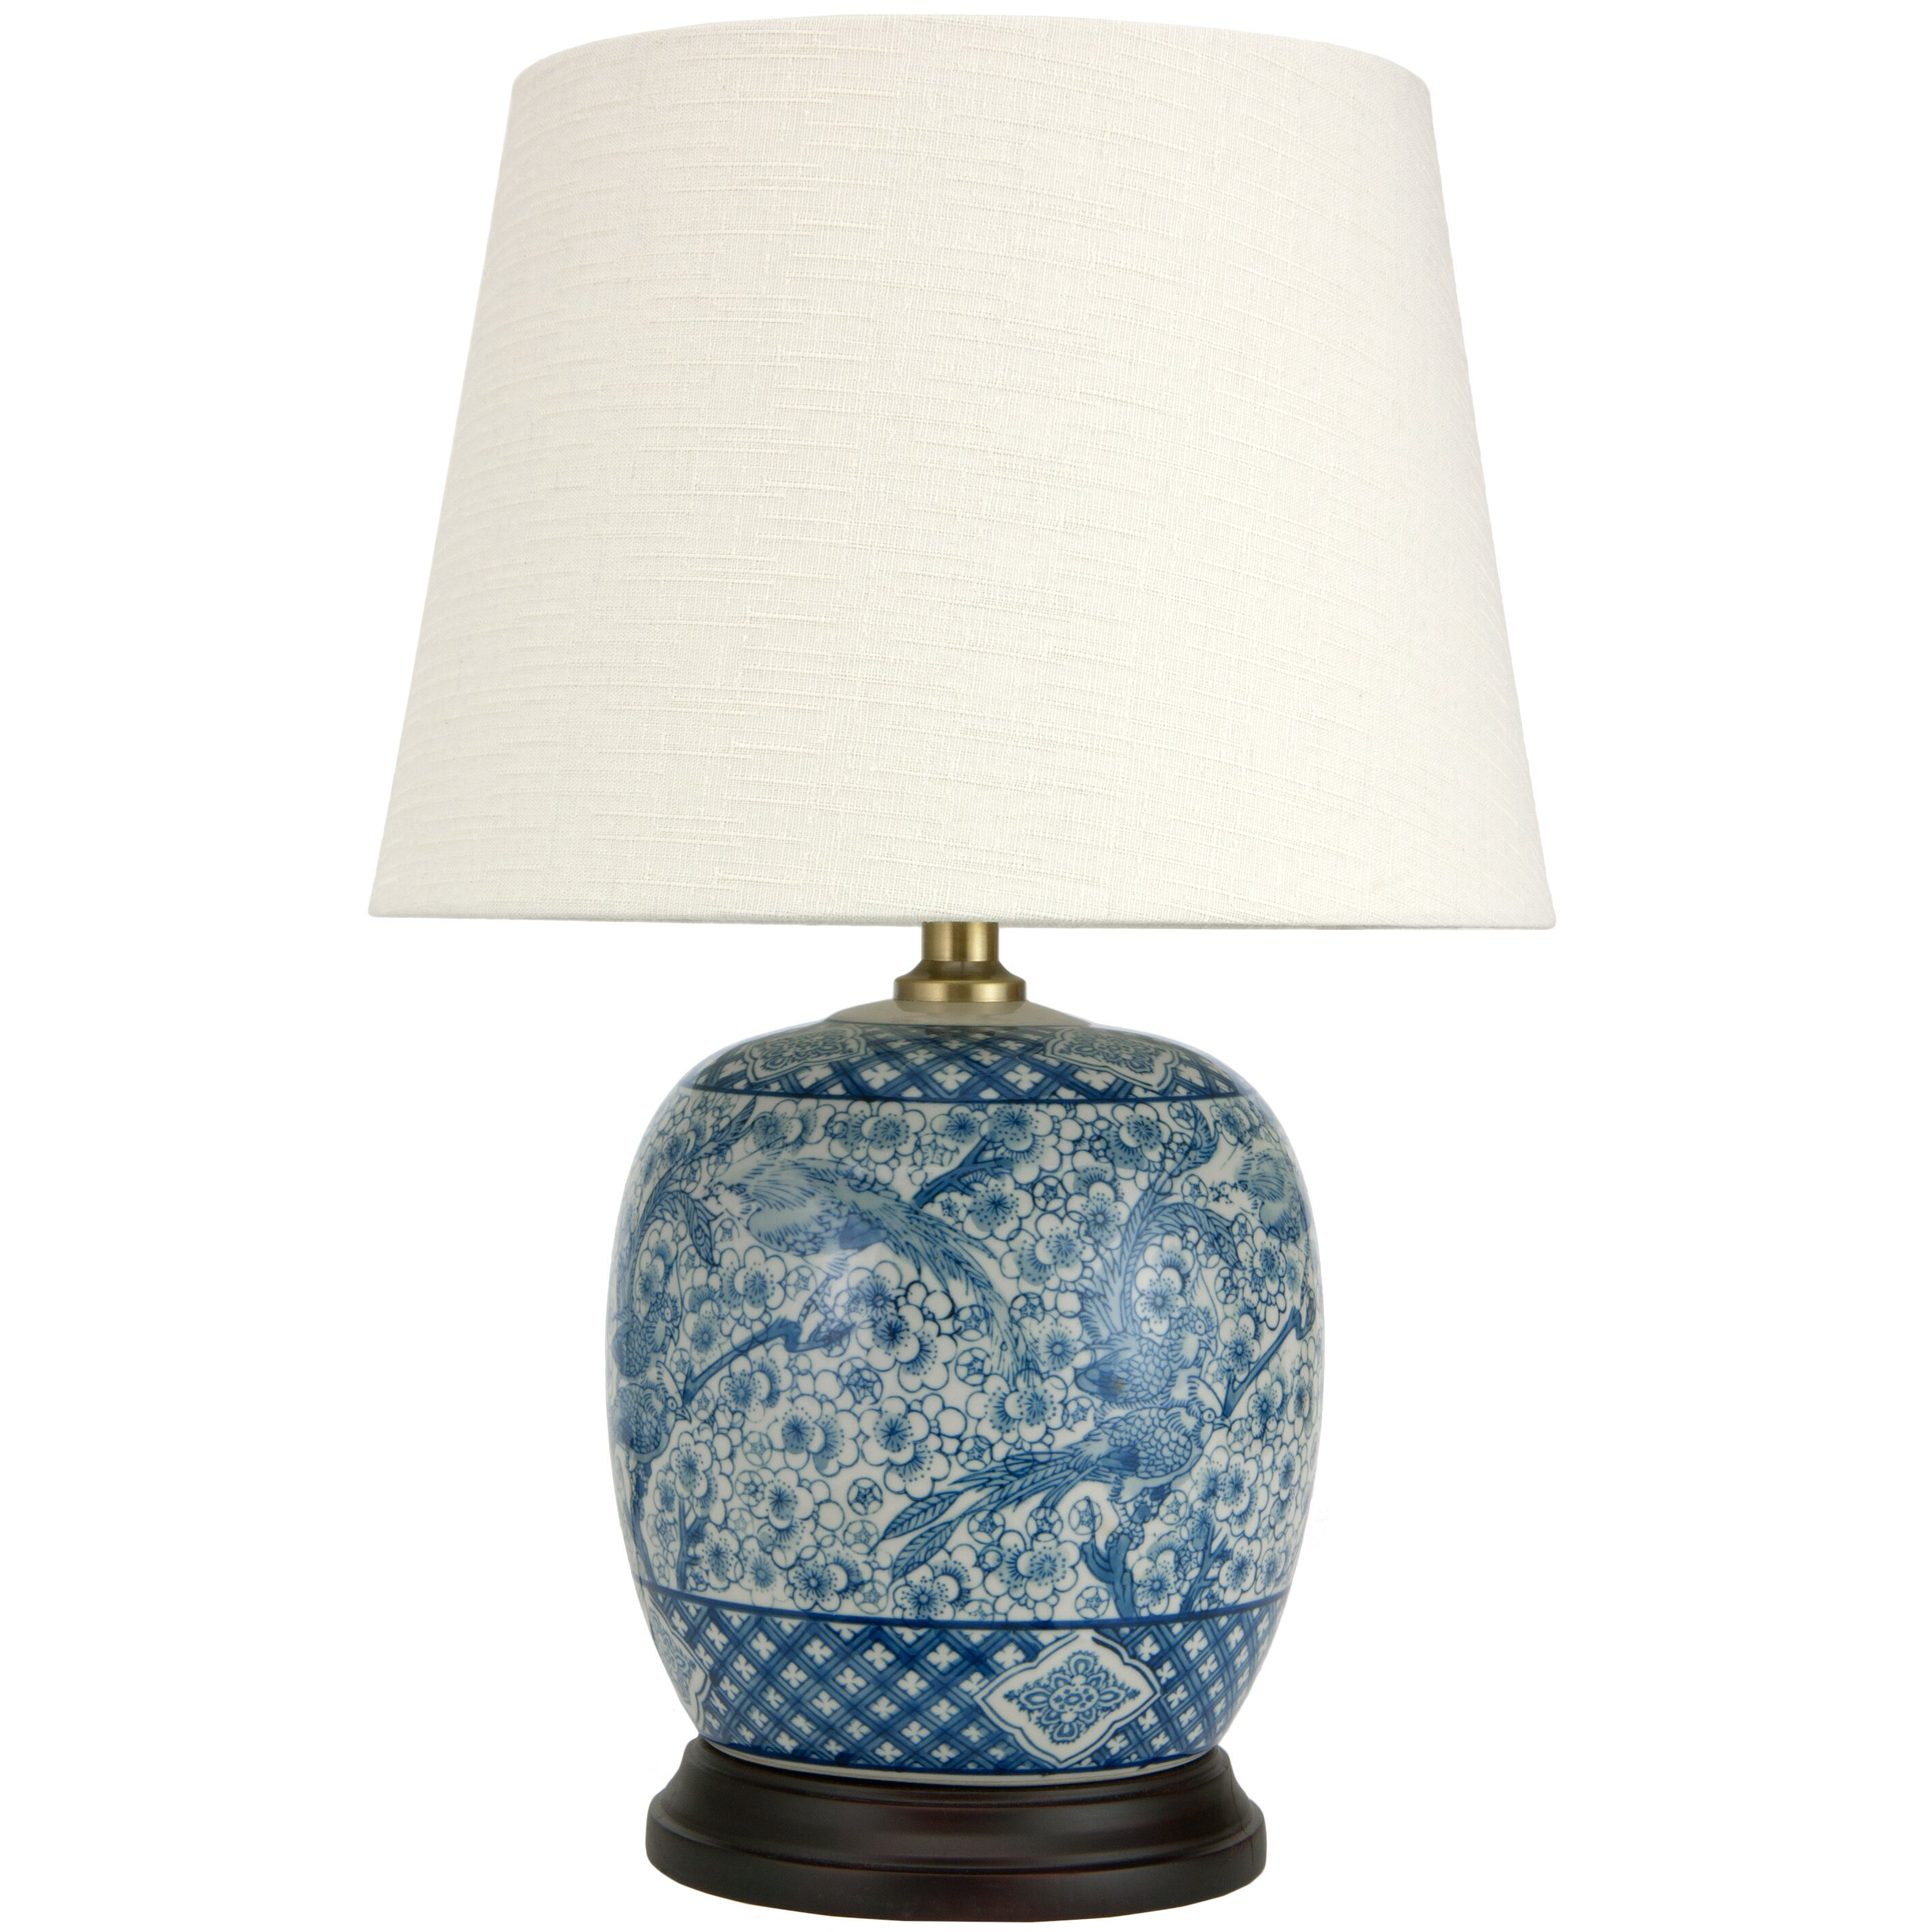 "Oriental Furniture Classic 20"" H Table Lamp with Empire ..."